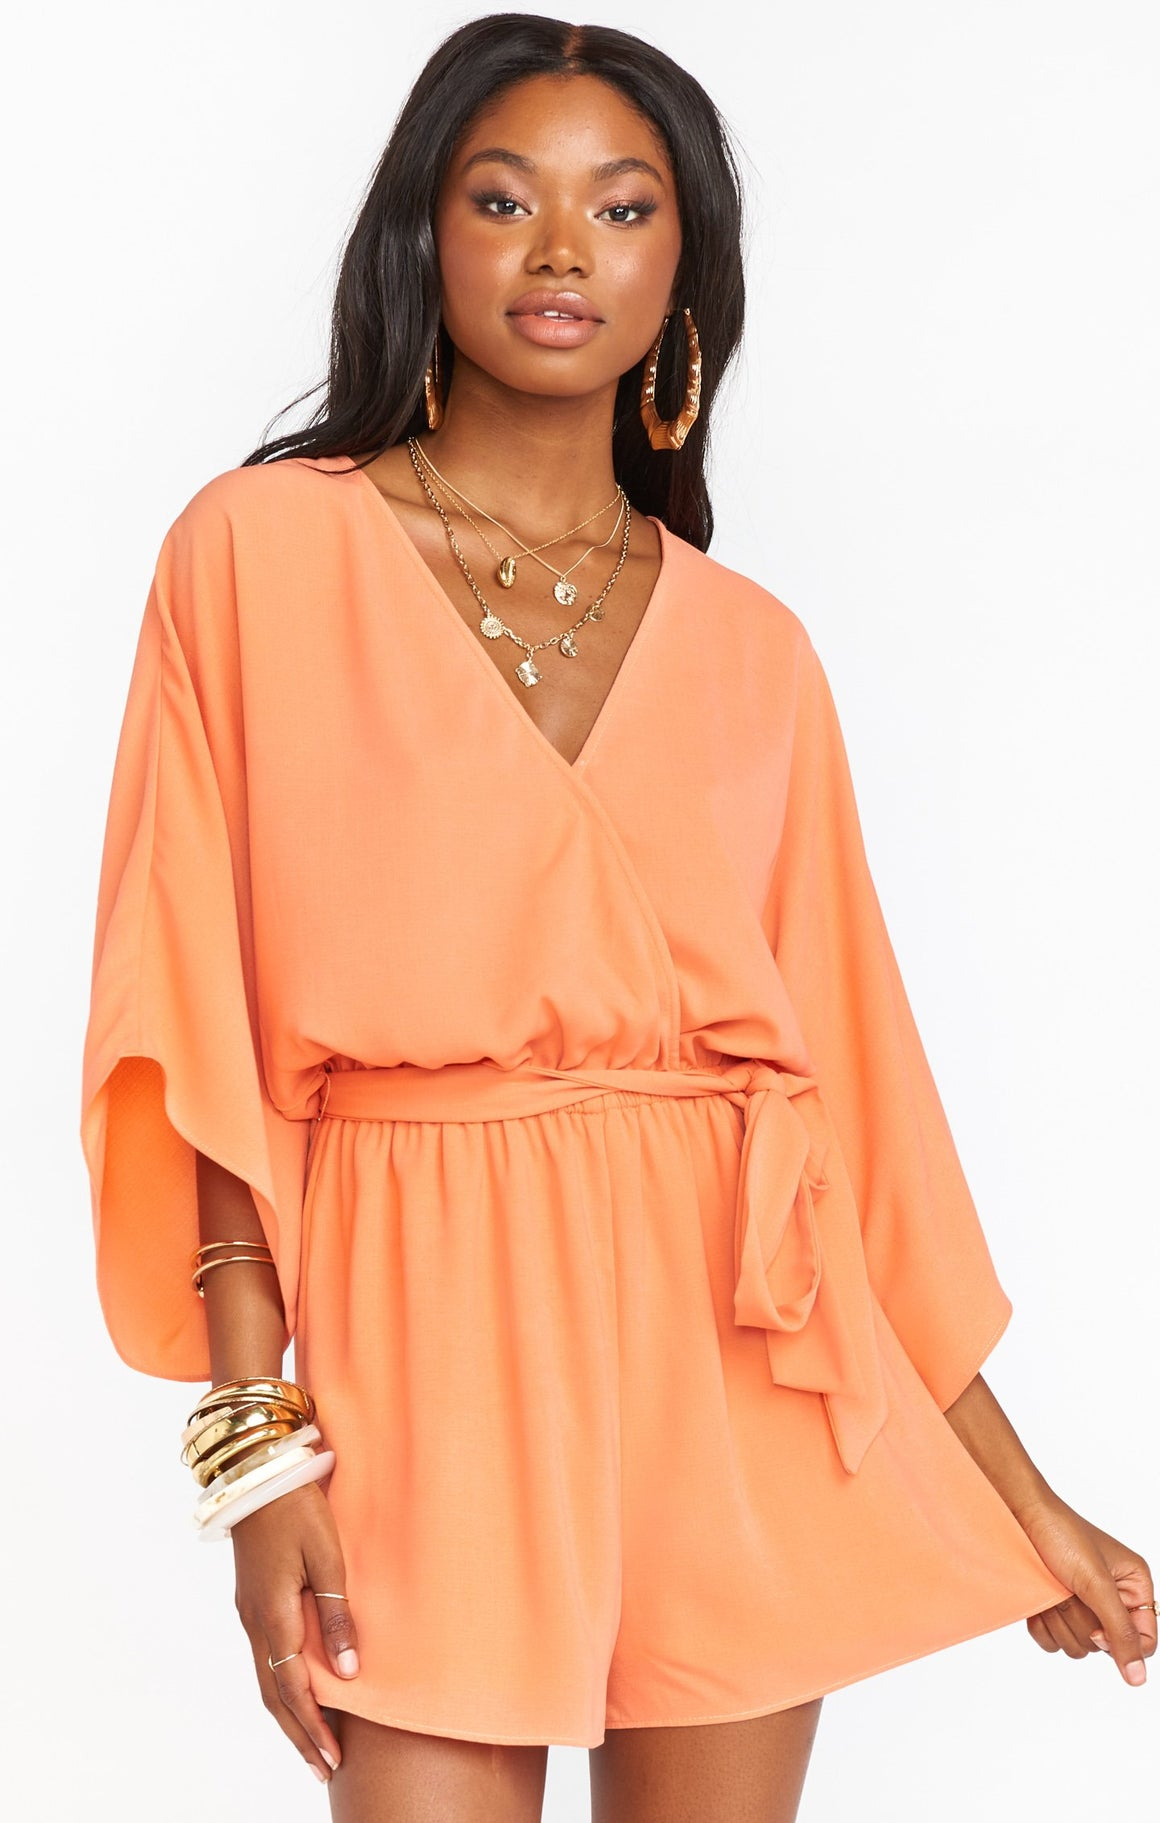 Tangerine Lo Romper - Show Me Your Mumu Virtual Trunk Show-Rompers-Show Me Your Mumu-Max & Riley